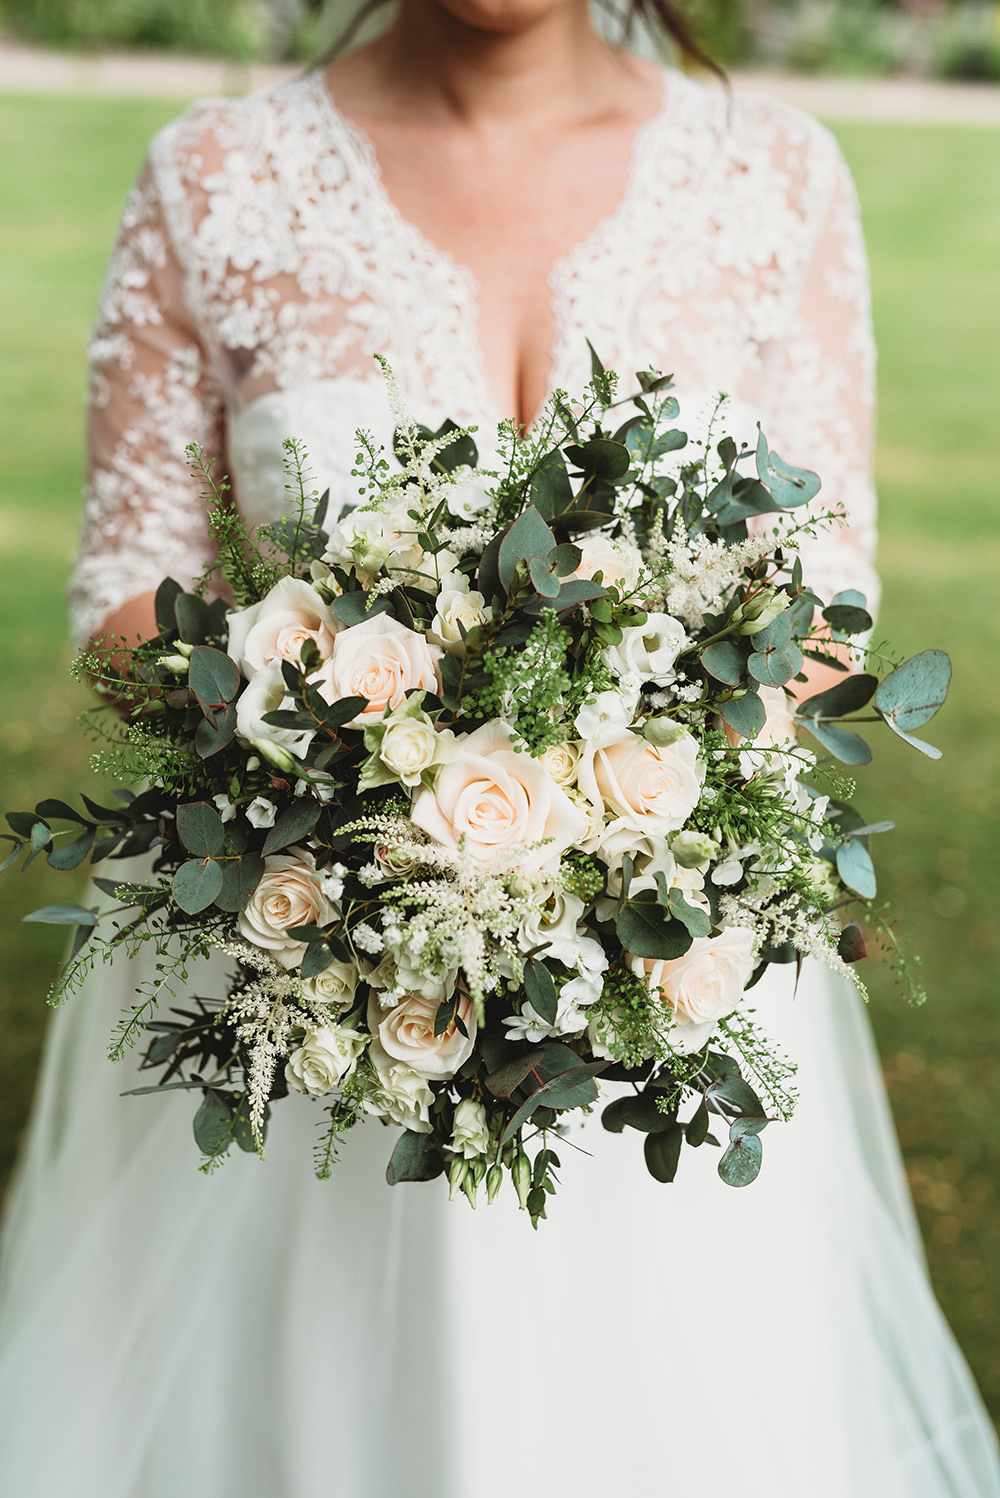 Bouquet Flowers Bride Bridal Pink Rose Astilbe Greenery Foliage Whinstone View Wedding Emma Adamson Photography